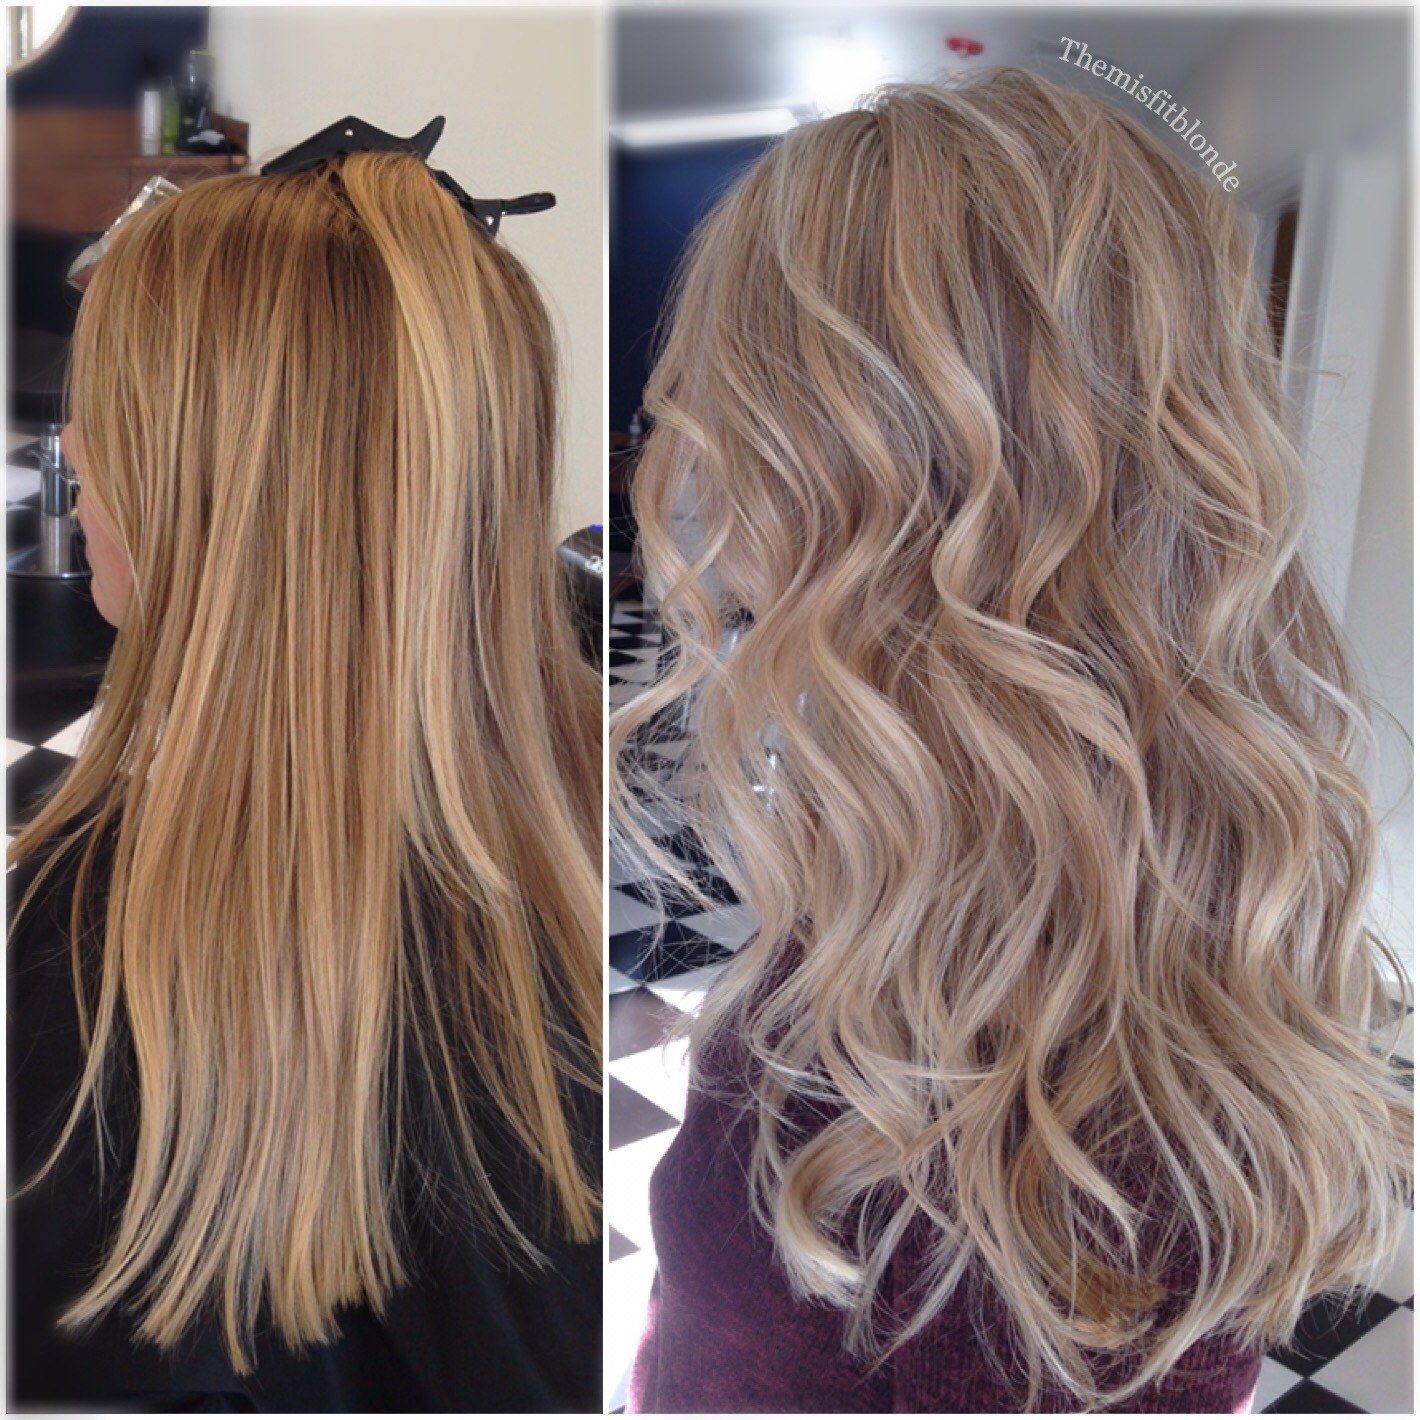 Babylights, Balayage and Toning For Blonde Perfection